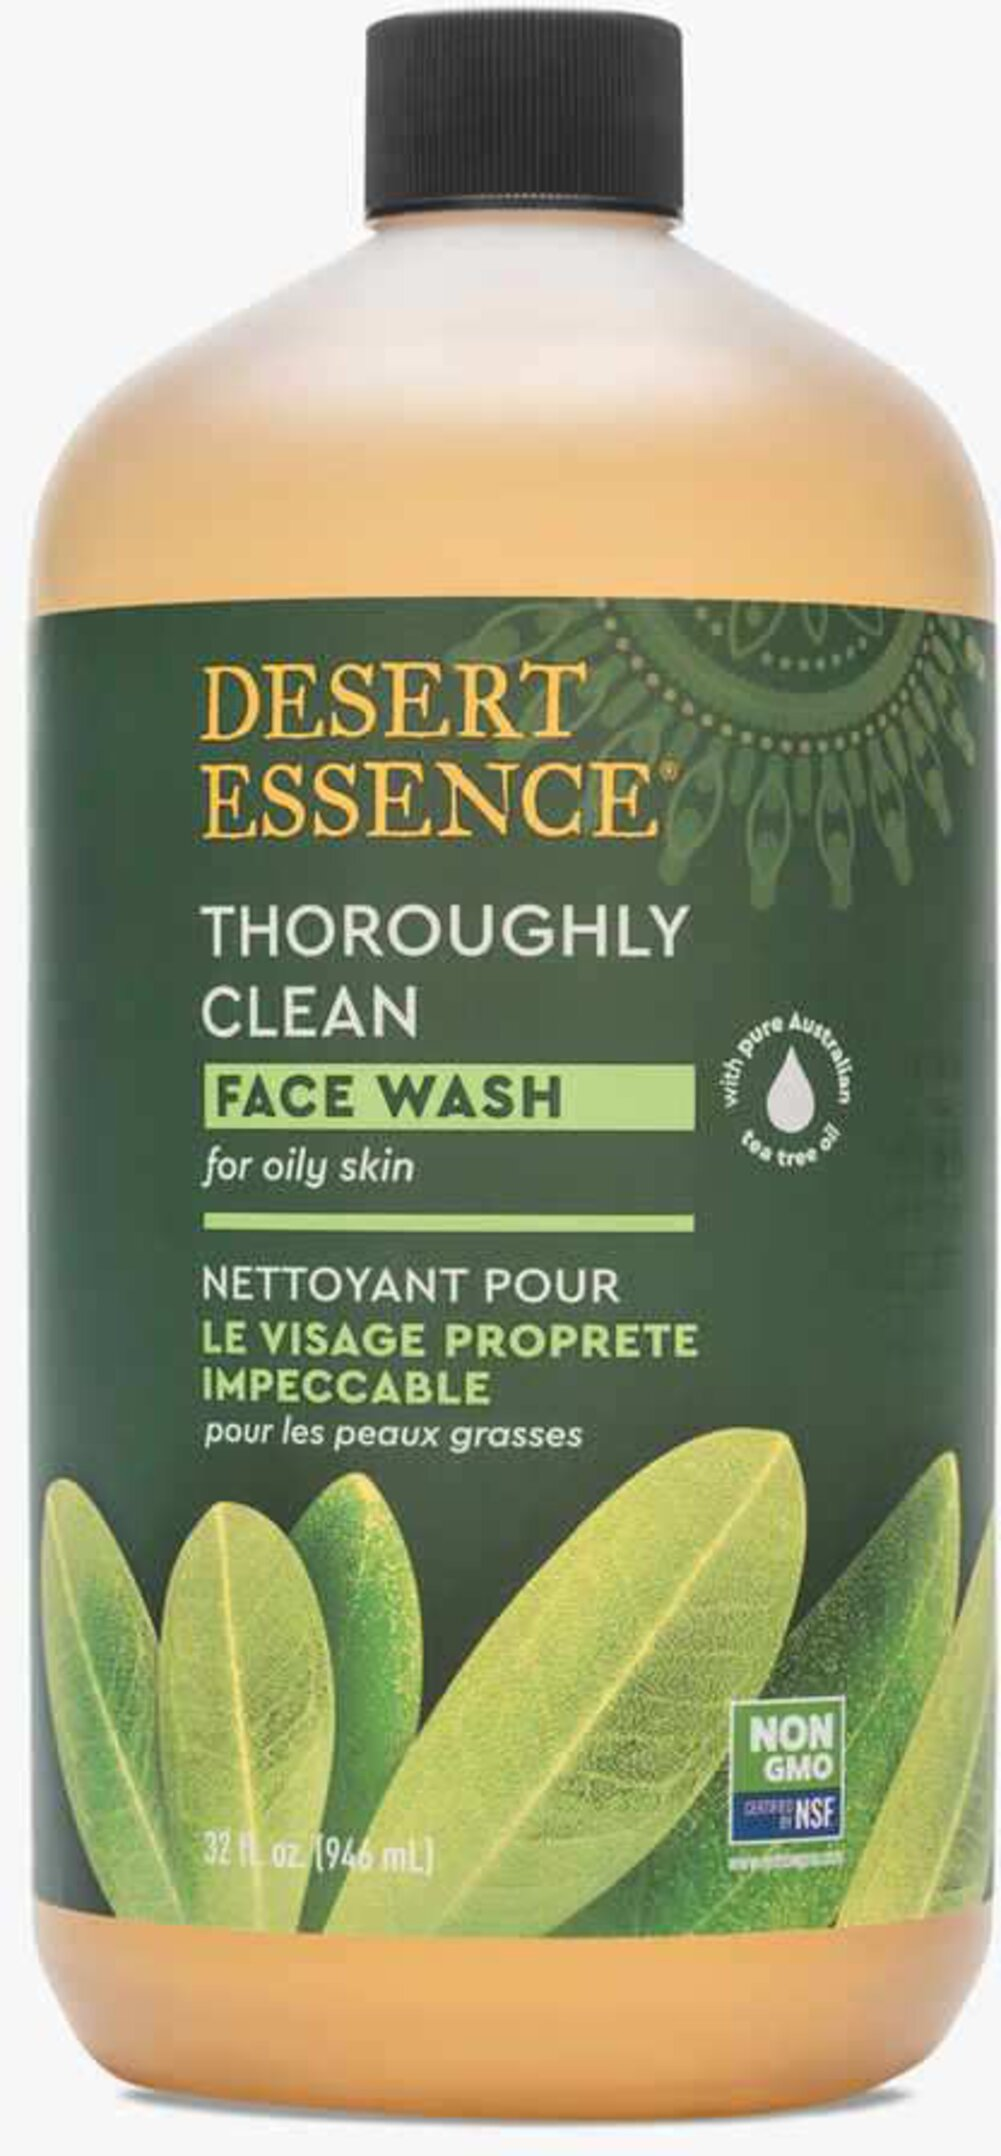 Tea Tree Oil Thoroughly Clean Face Wash for Oily/Combination Skin  32 fl oz Face Wash  $12.99